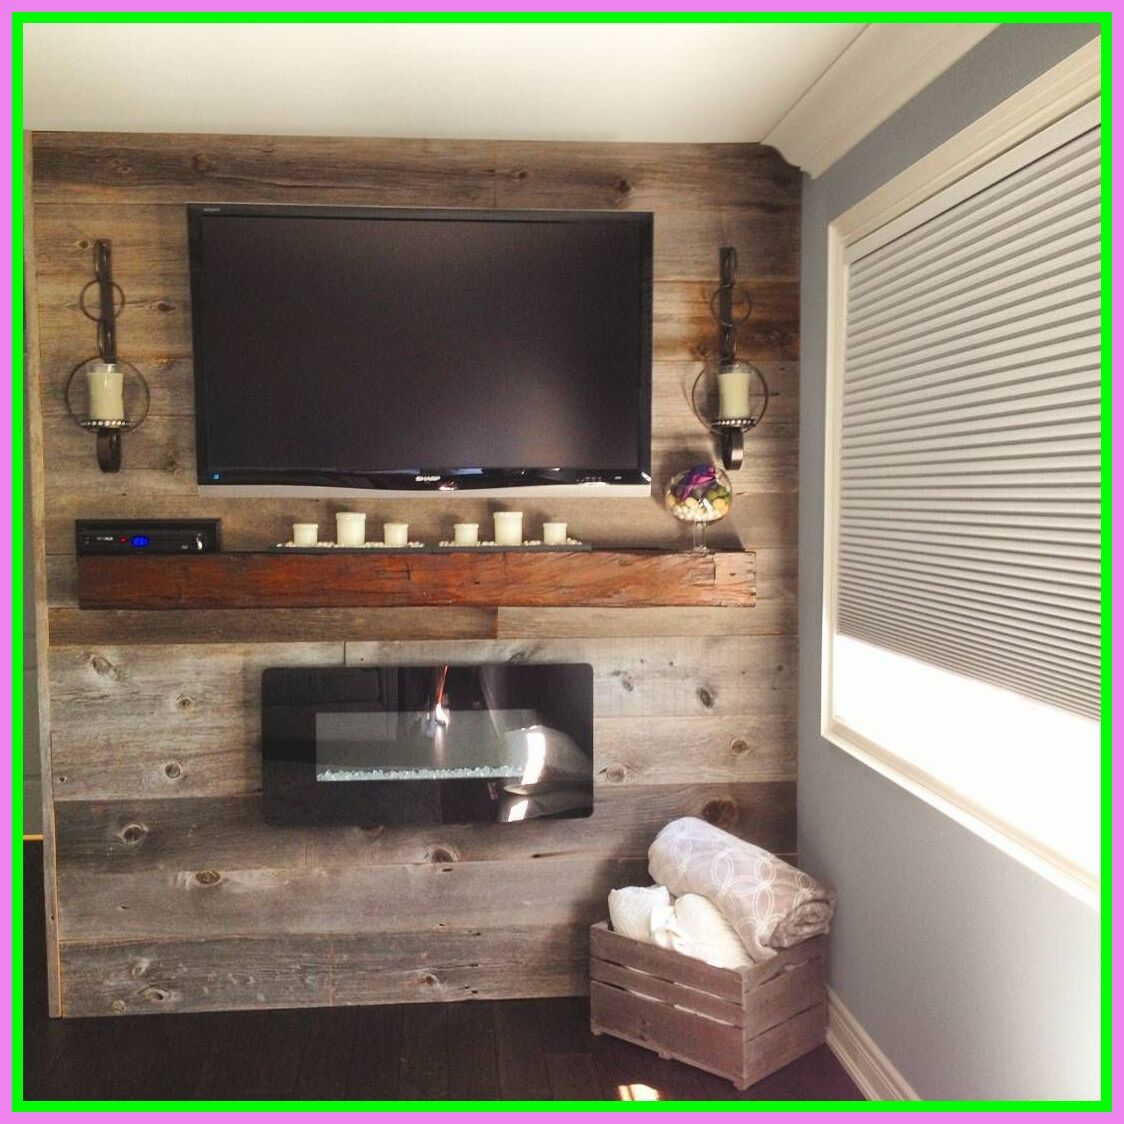 130 Reference Of Reclaimed Wood Tv Stand With Fireplace In 2020 Barn Wood Walls Living Room Reclaimed Wood Tv Stand Tv Stand Wood